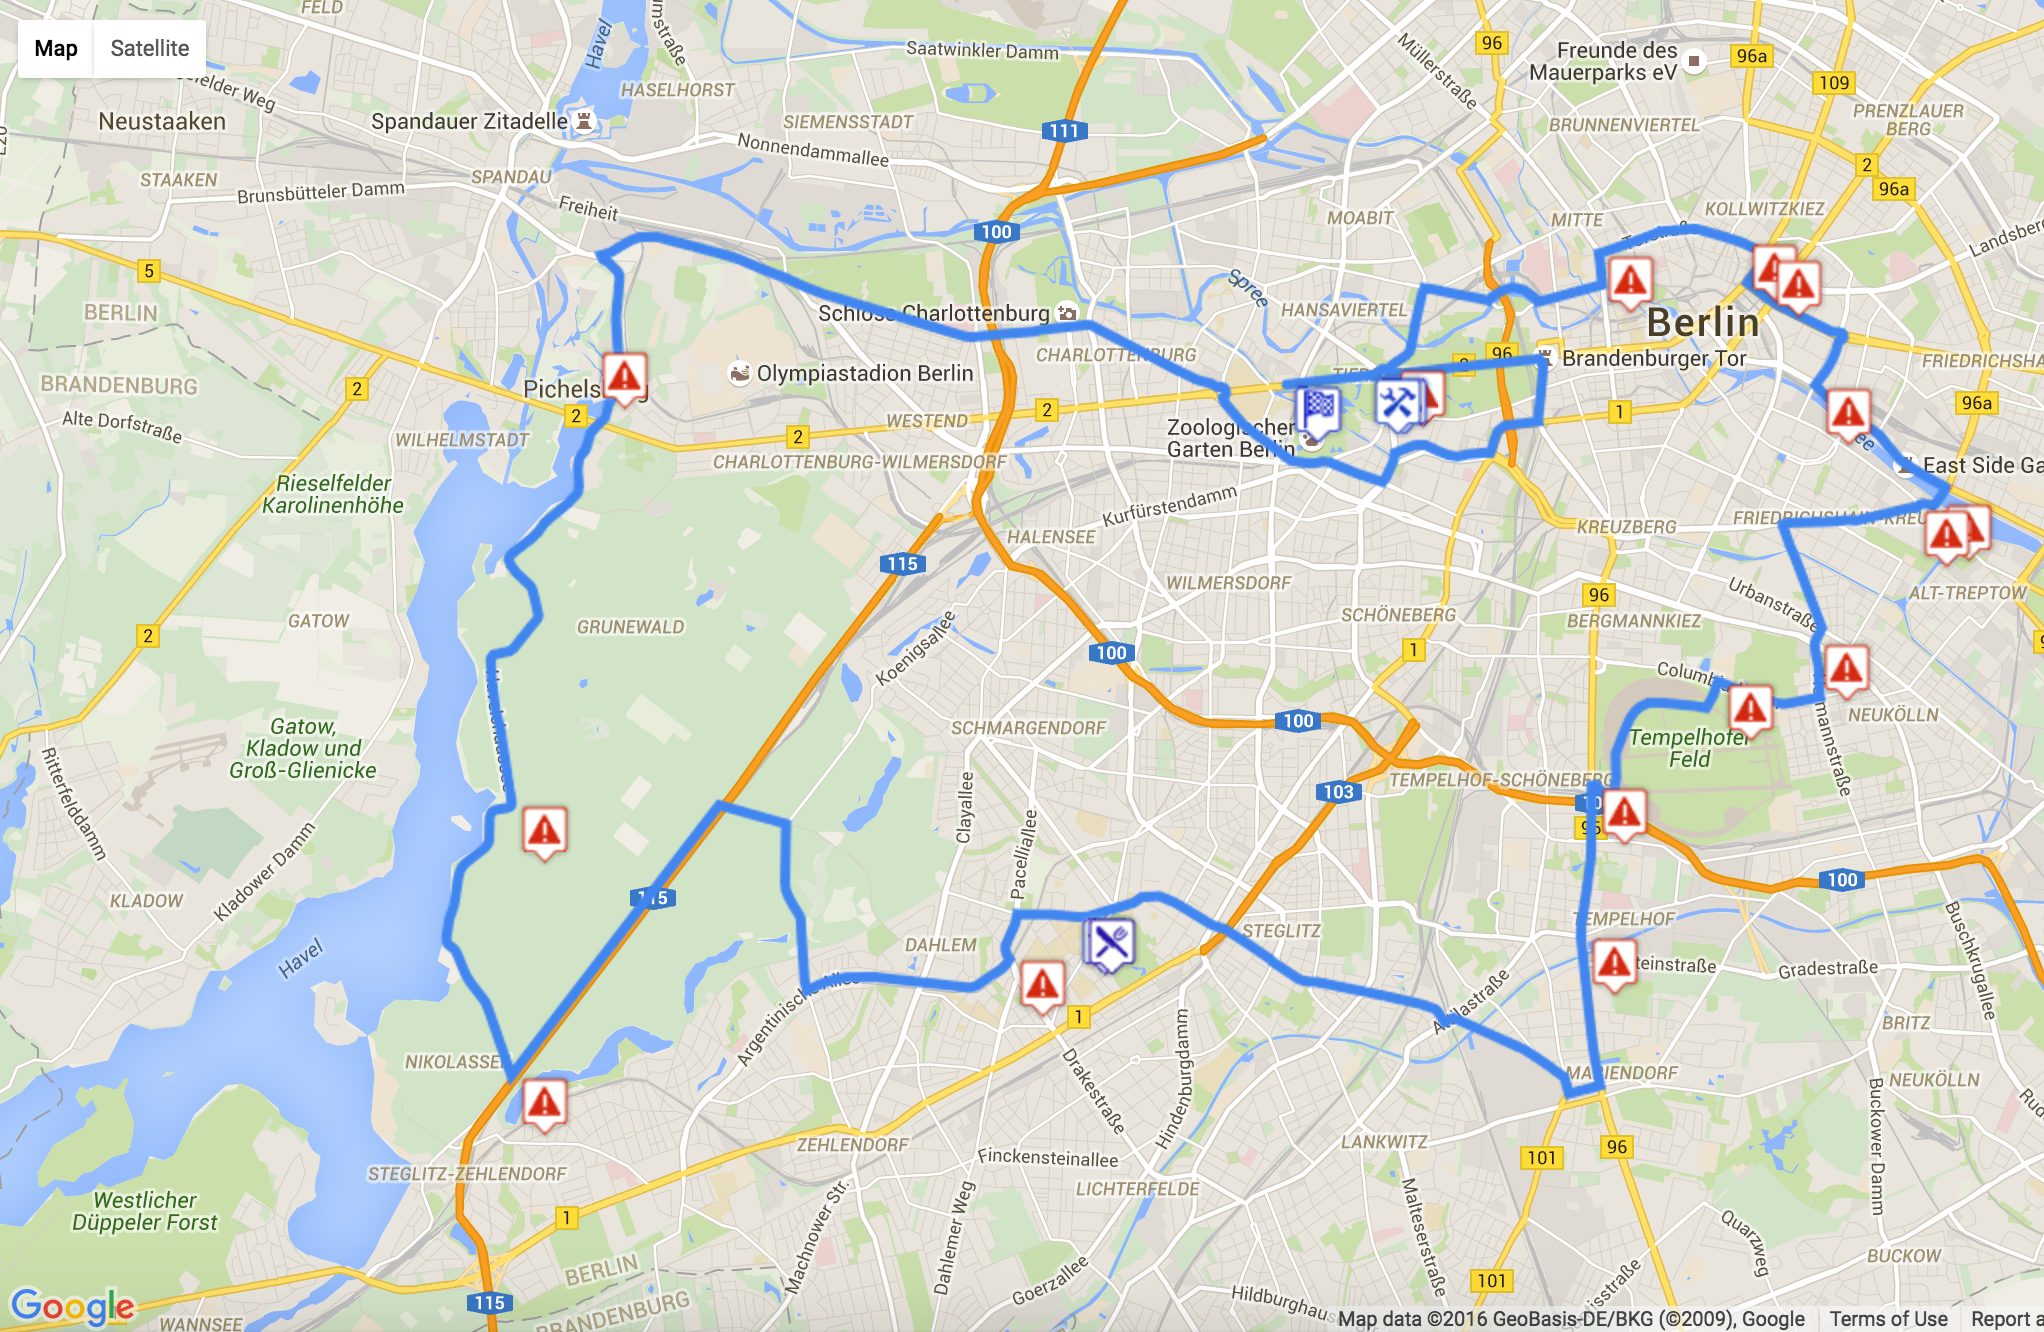 The 60km route